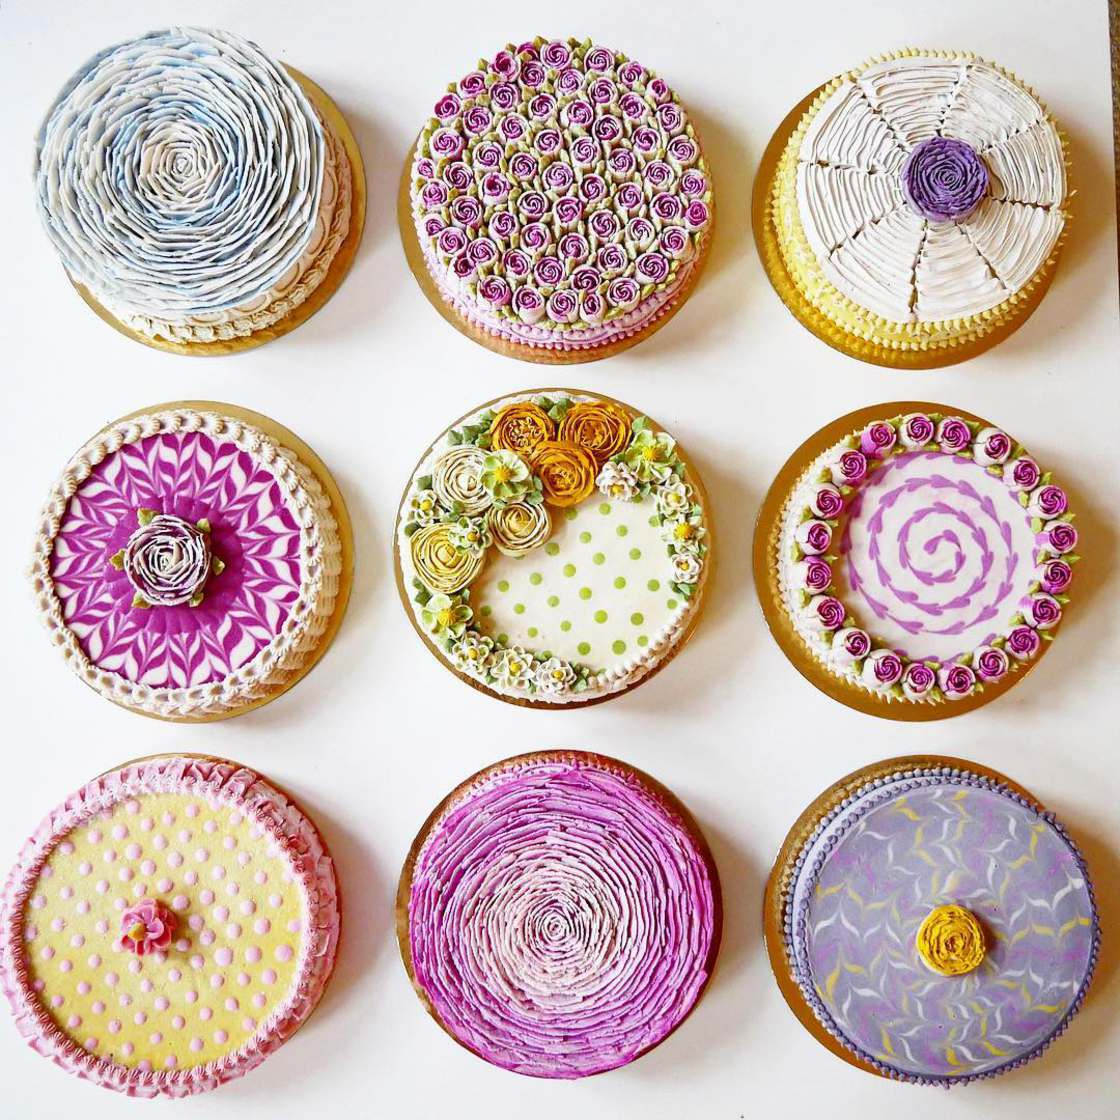 The vegan cakes of Culinary Dots are real works of art